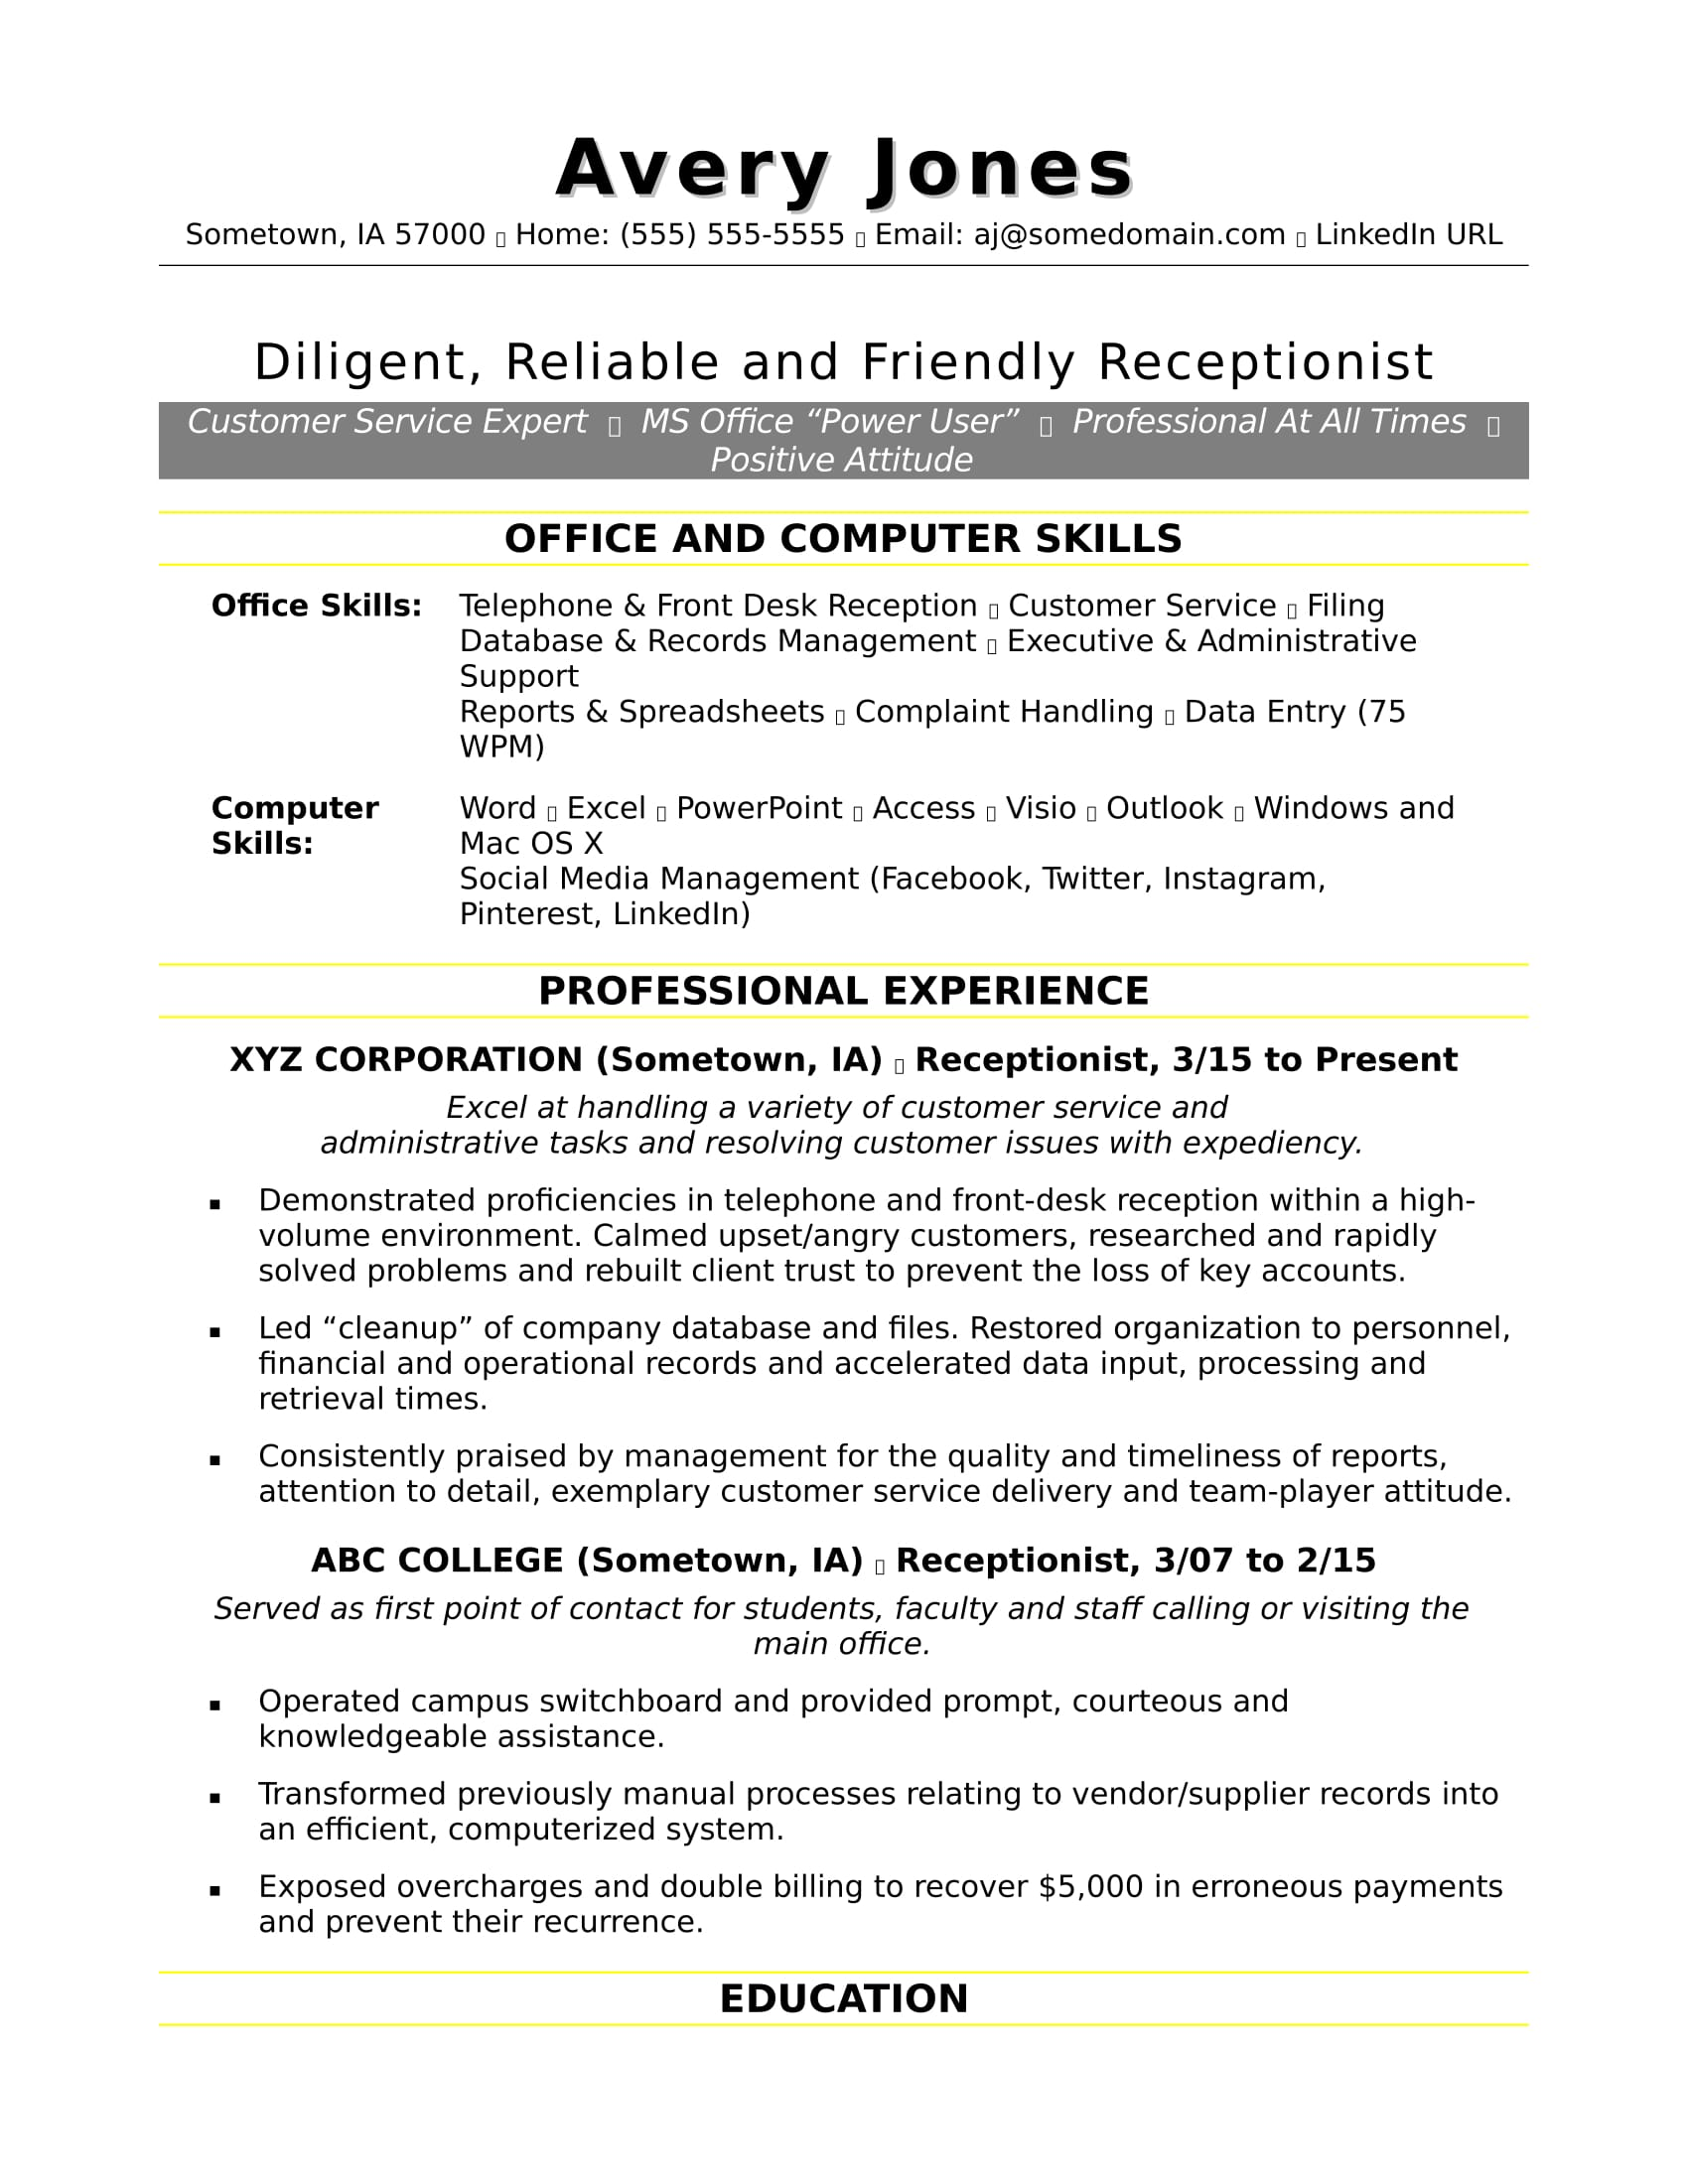 receptionist resume sample monster examples of summary for healthcare administration Resume Examples Of Resume Summary For Receptionist